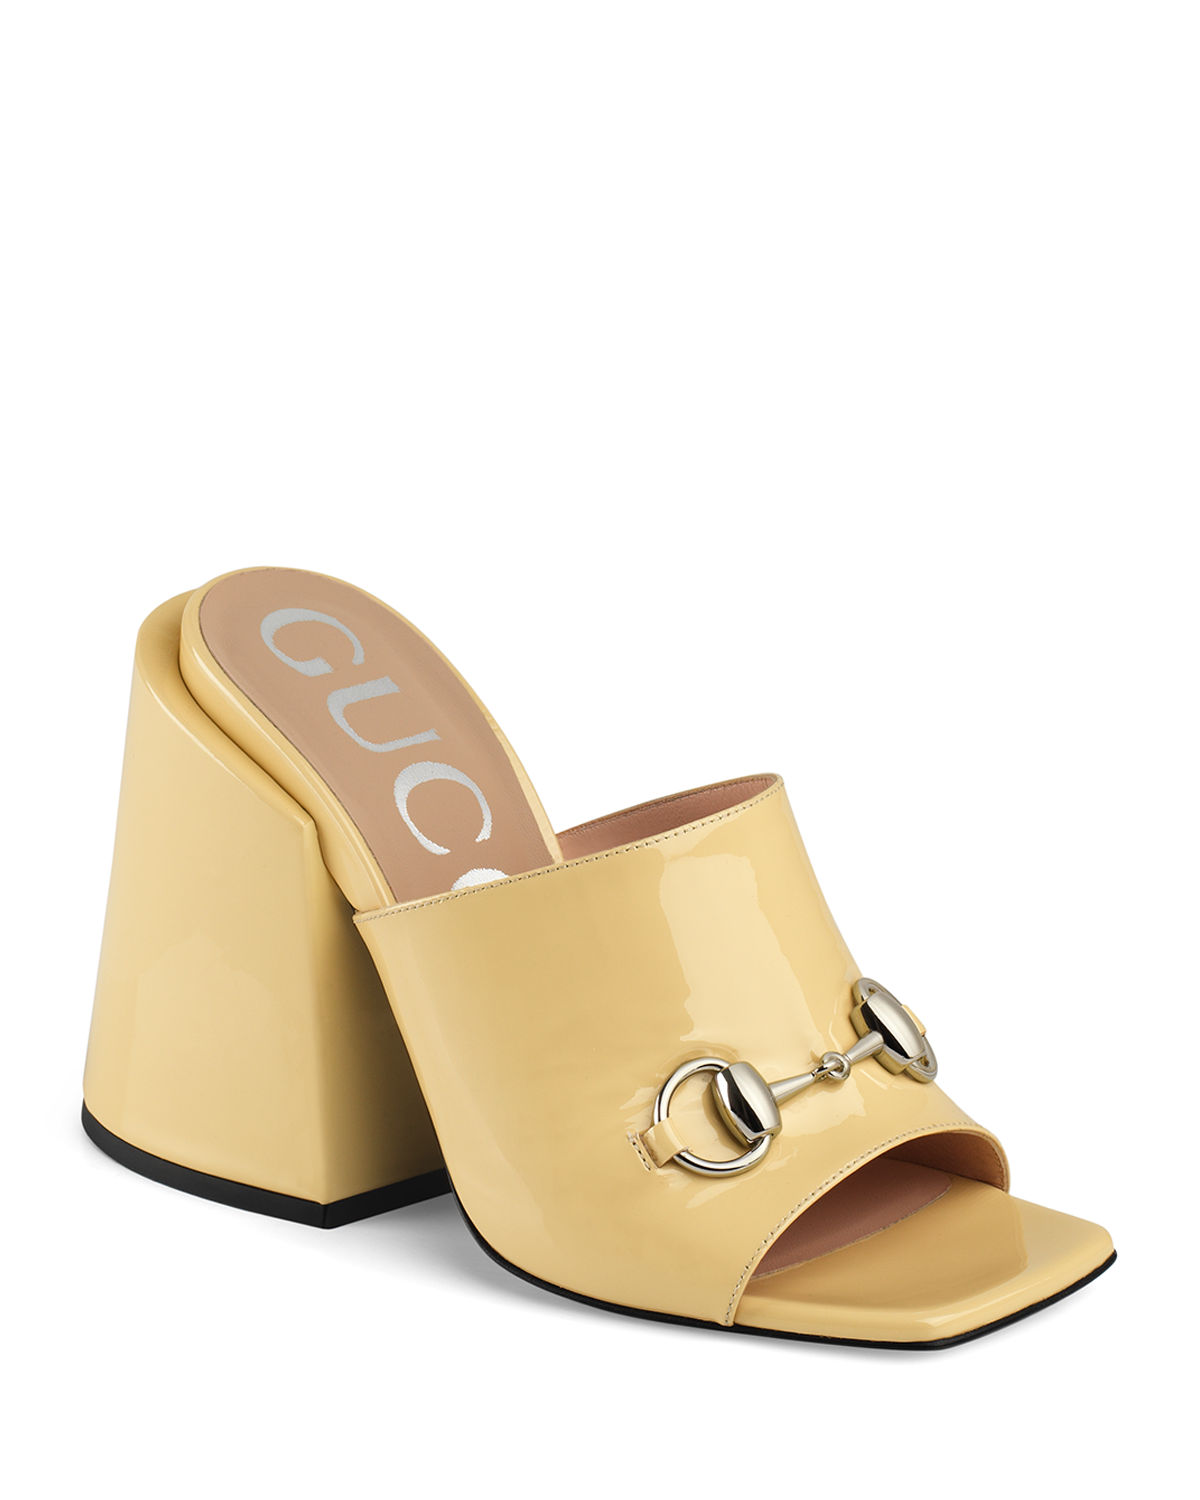 Lexi 105mm Patent Leather Slide